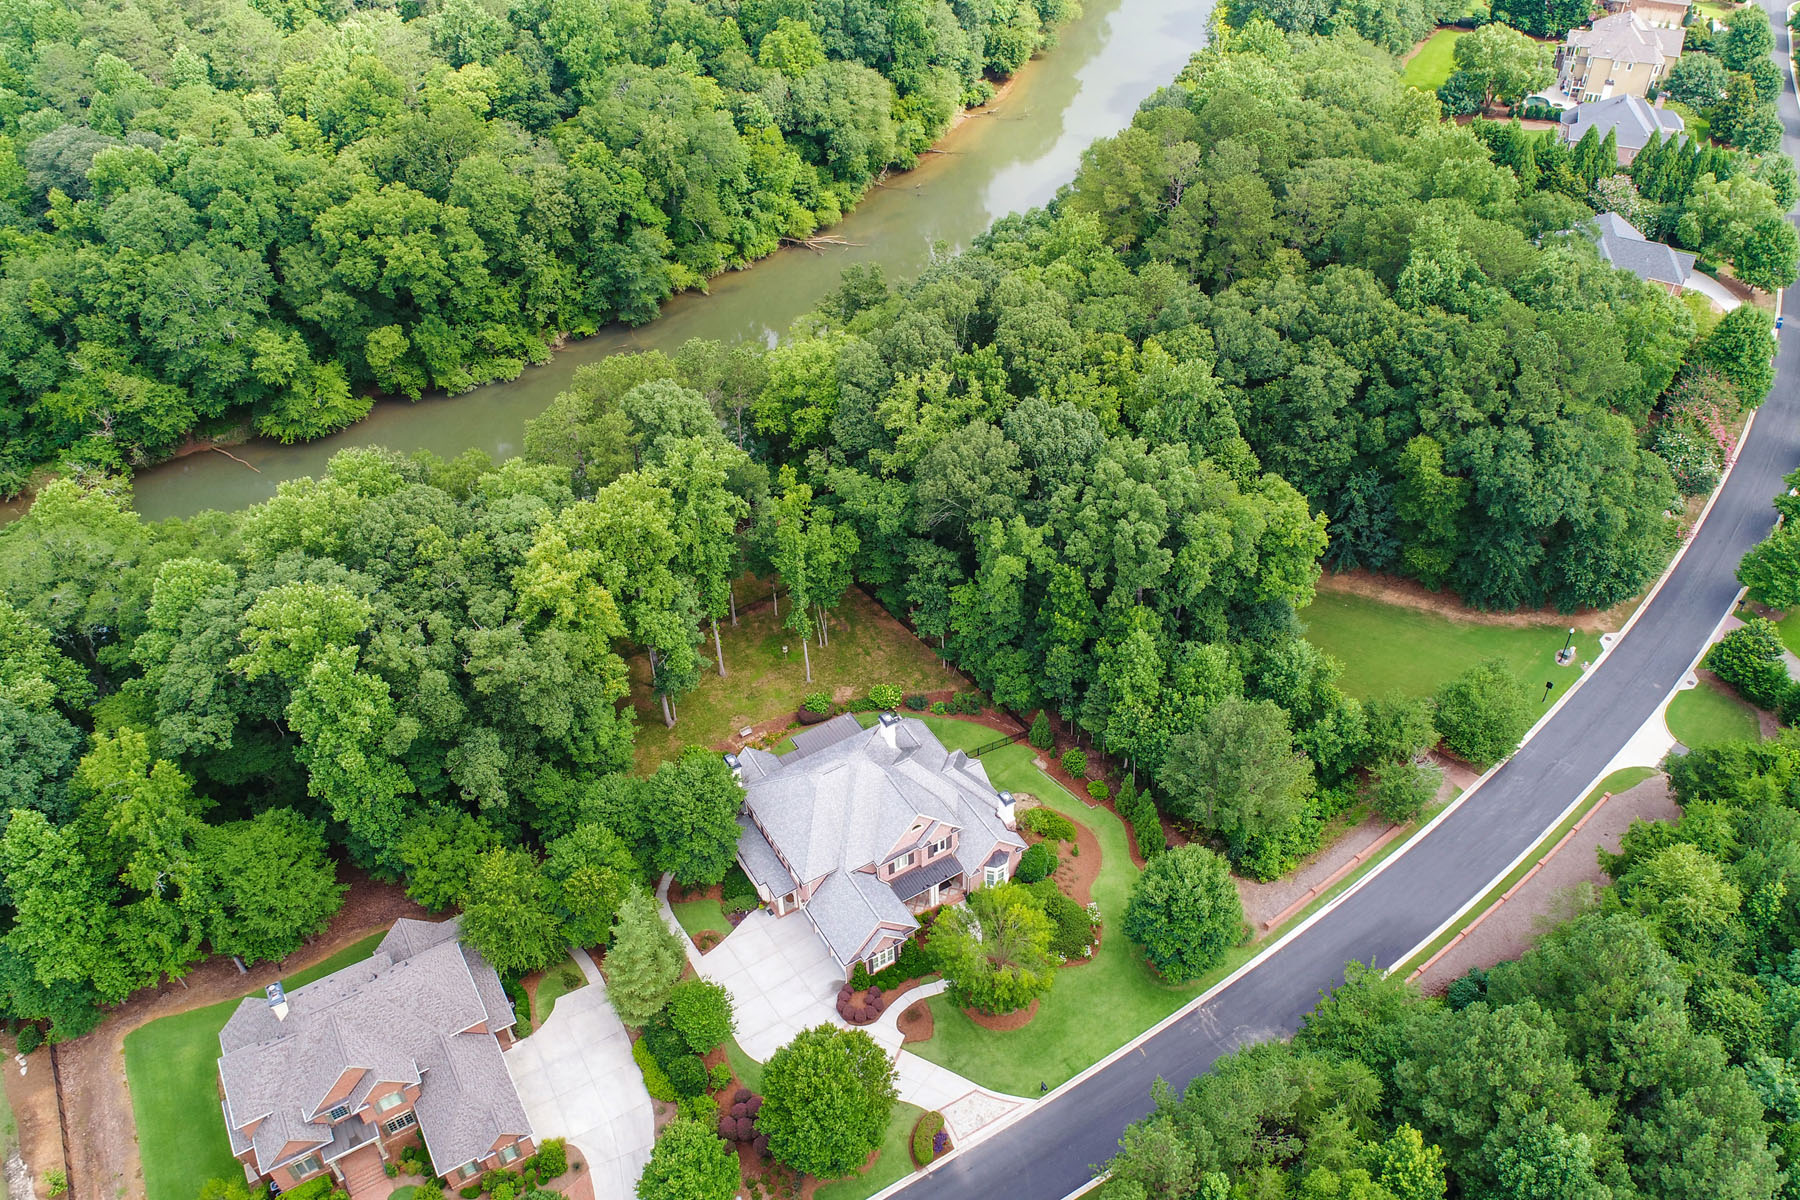 Single Family Home for Sale at Spectacular Custom-built Executive Estate with Chattahoochee River Frontage 795 Vista Bluff Drive Johns Creek, Georgia 30097 United States